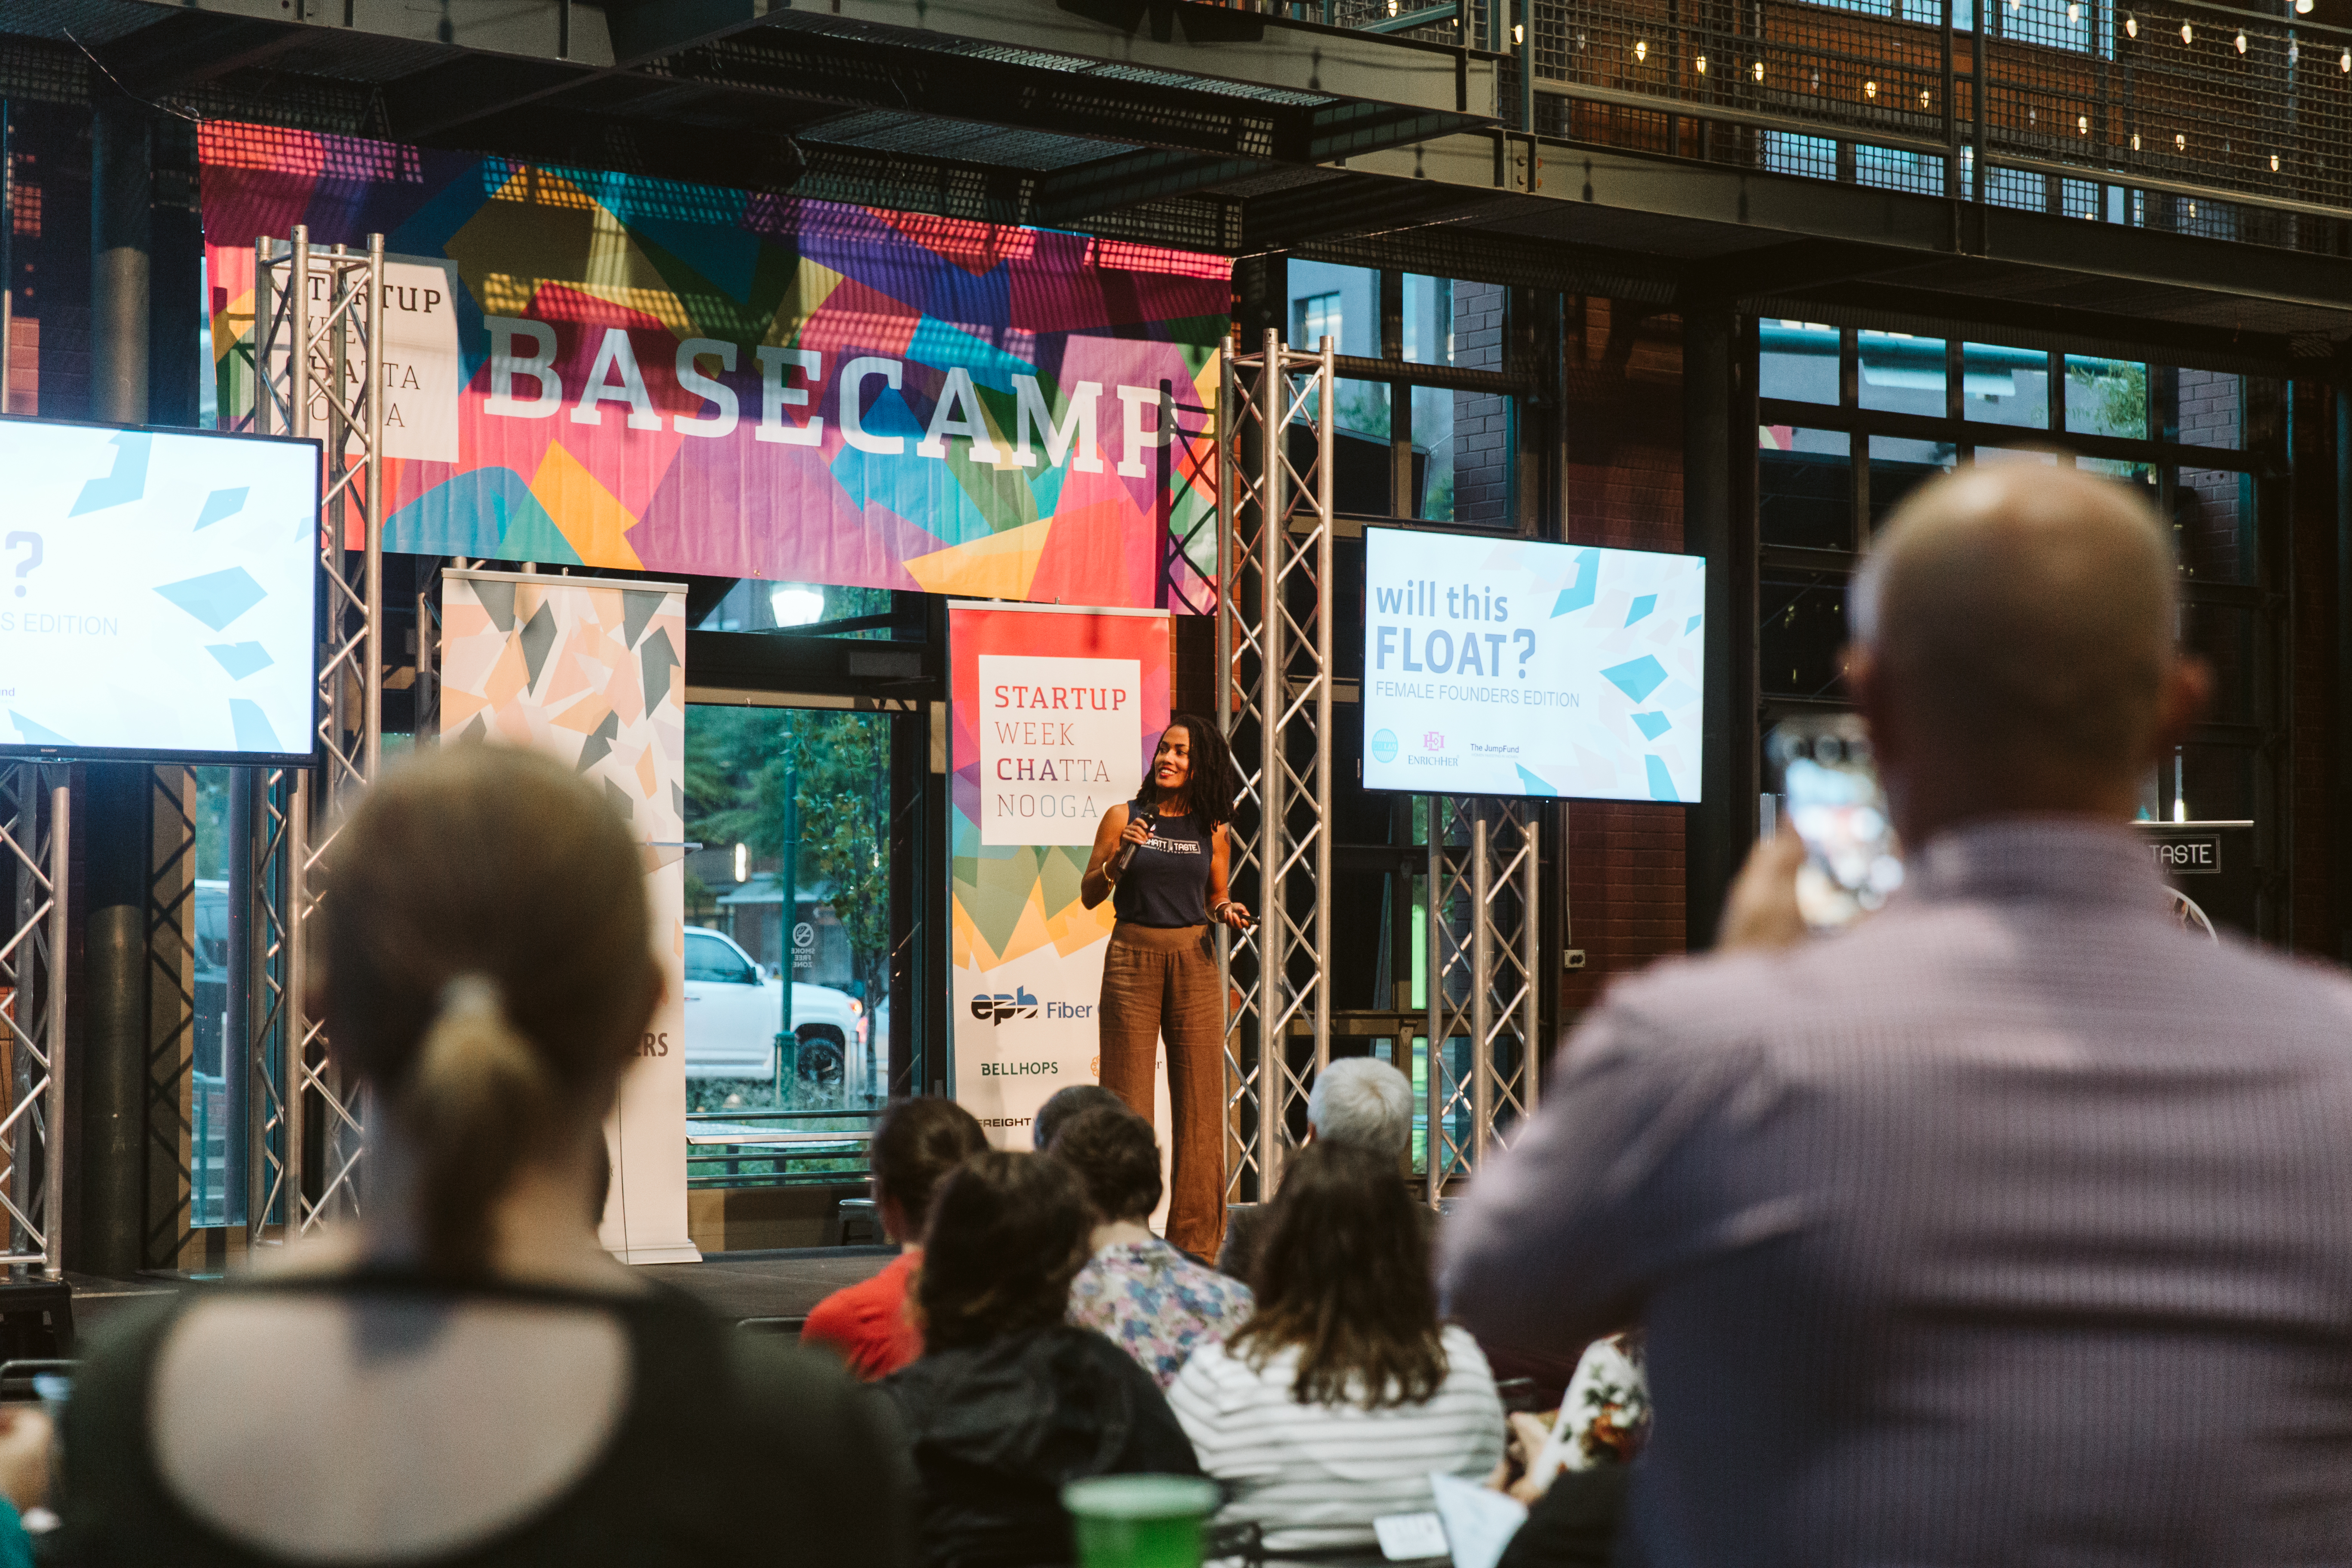 Briana Garza pitching at last year's Will This Float event during Startup Week